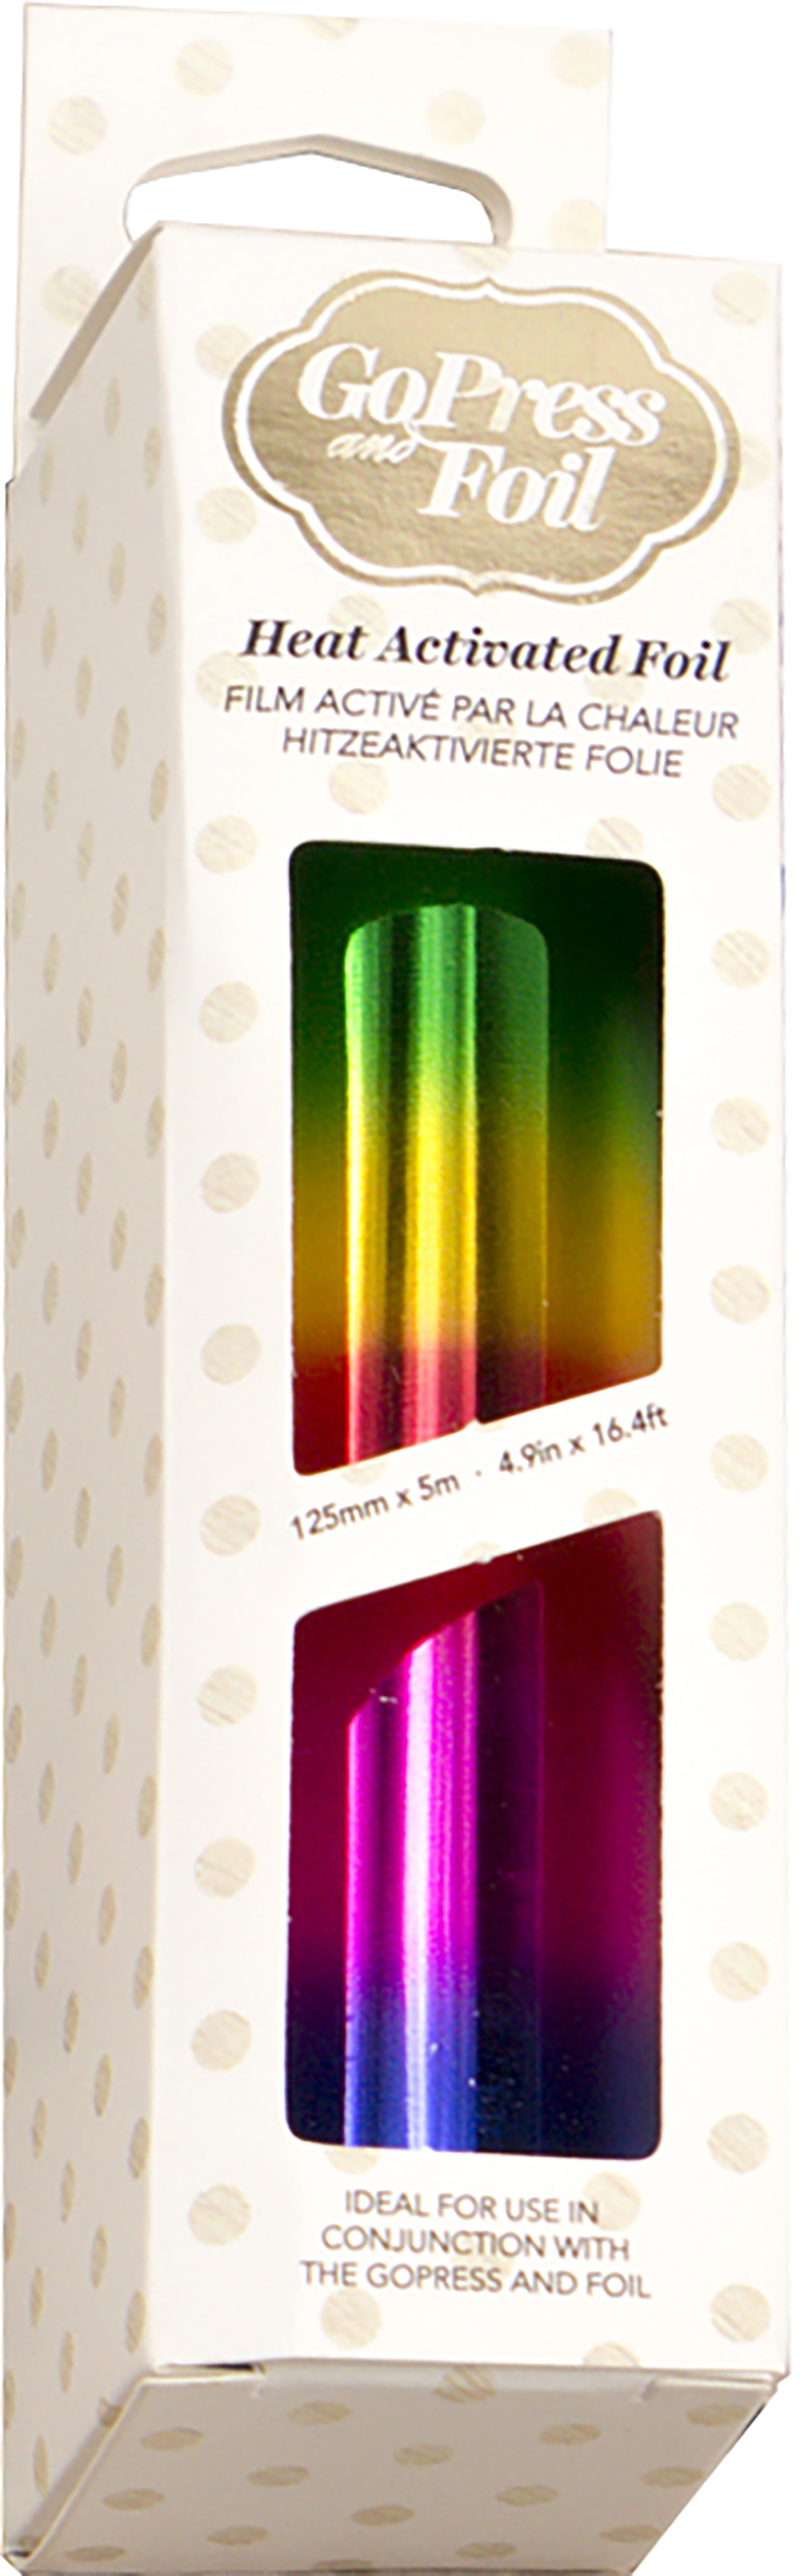 Couture Creations Foil 5X16.4'-Rainbow Bands-Gradient Mirror Finish